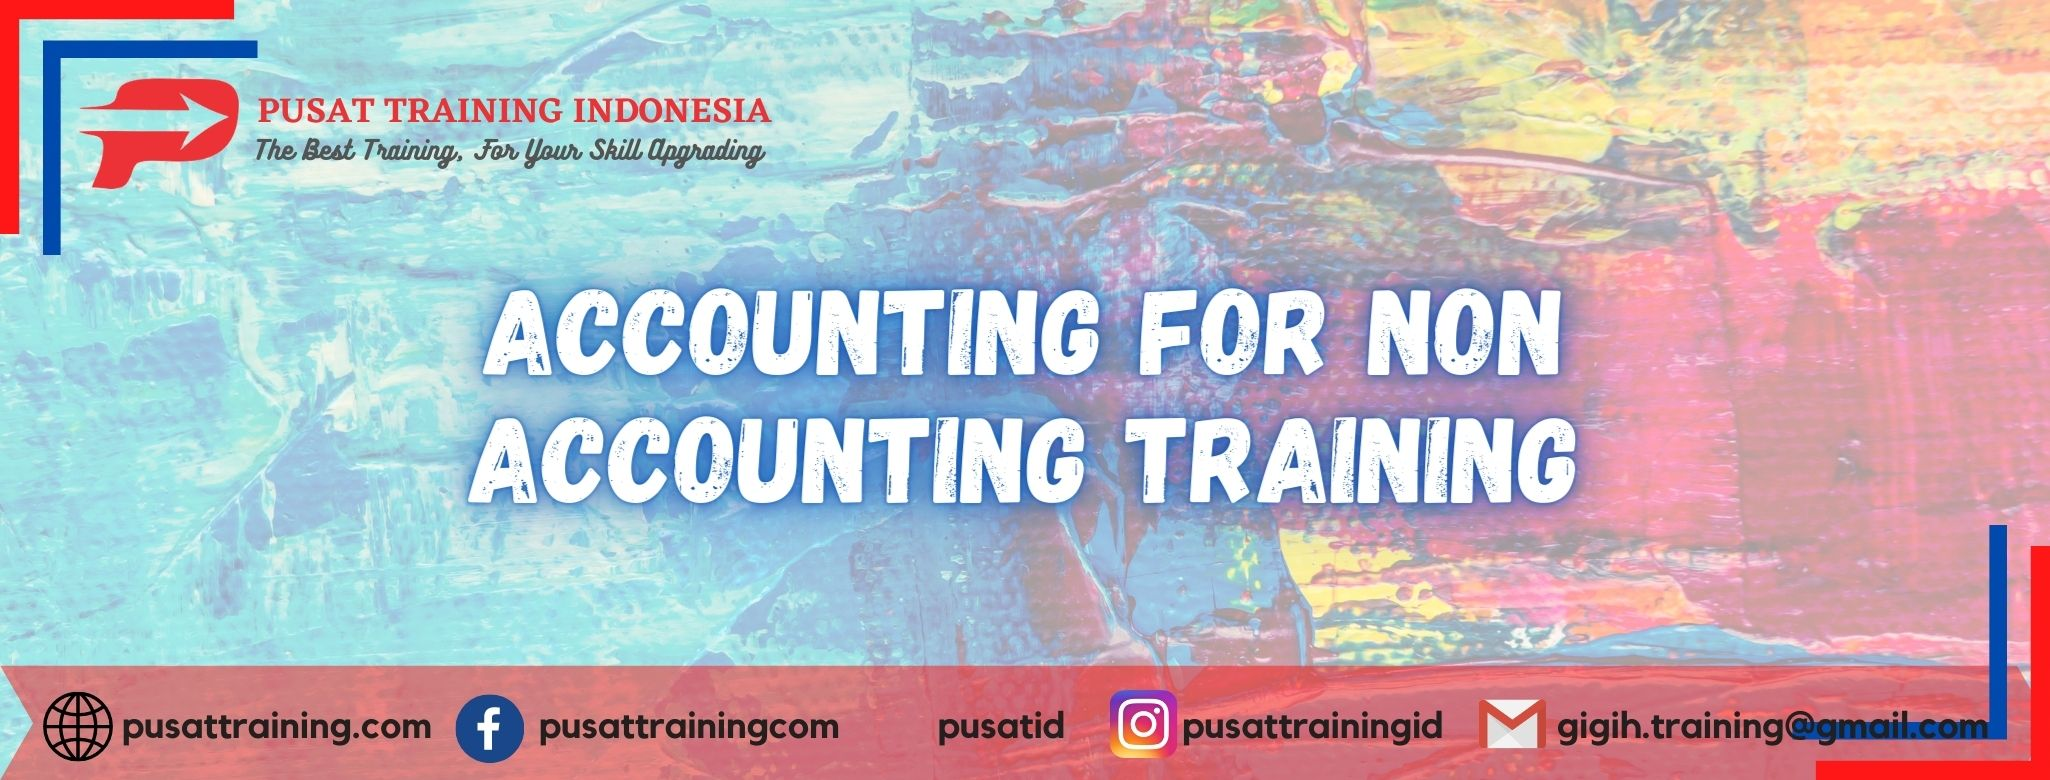 Accounting-for-Non-Accounting-Training